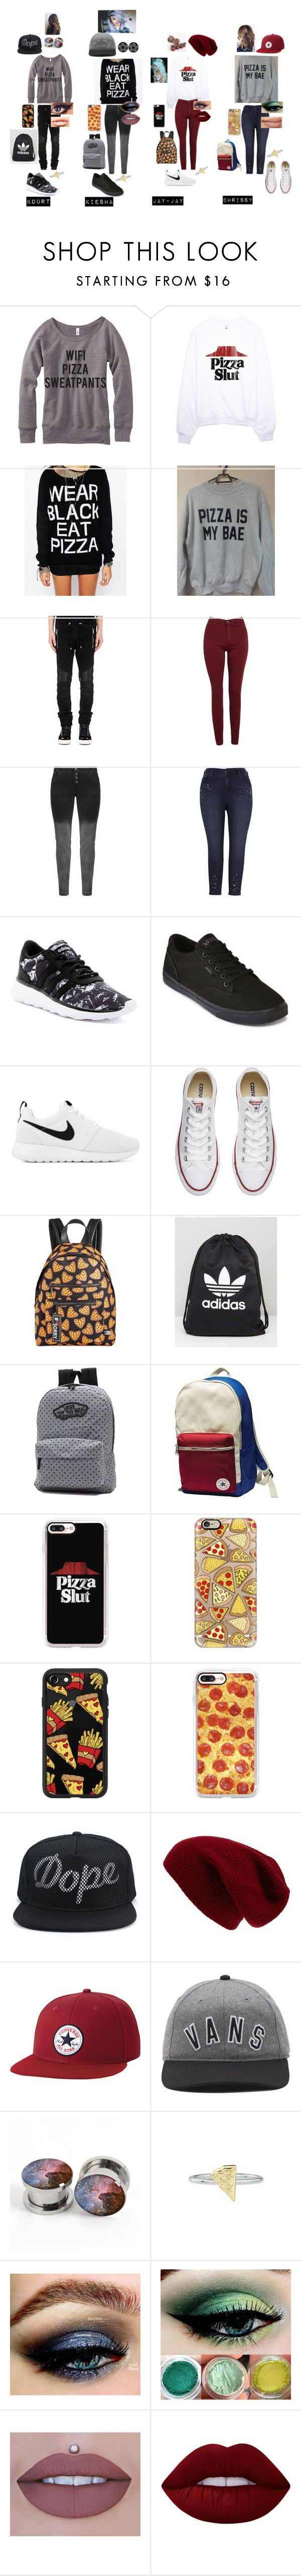 """Pizza Squad"" by punk-764 on Polyvore featuring Kill Star, Balmain, AG Adriano Goldschmied, Melissa McCarthy Seven7, adidas, Vans, NIKE, Converse, Circus by Sam Edelman and Casetify"